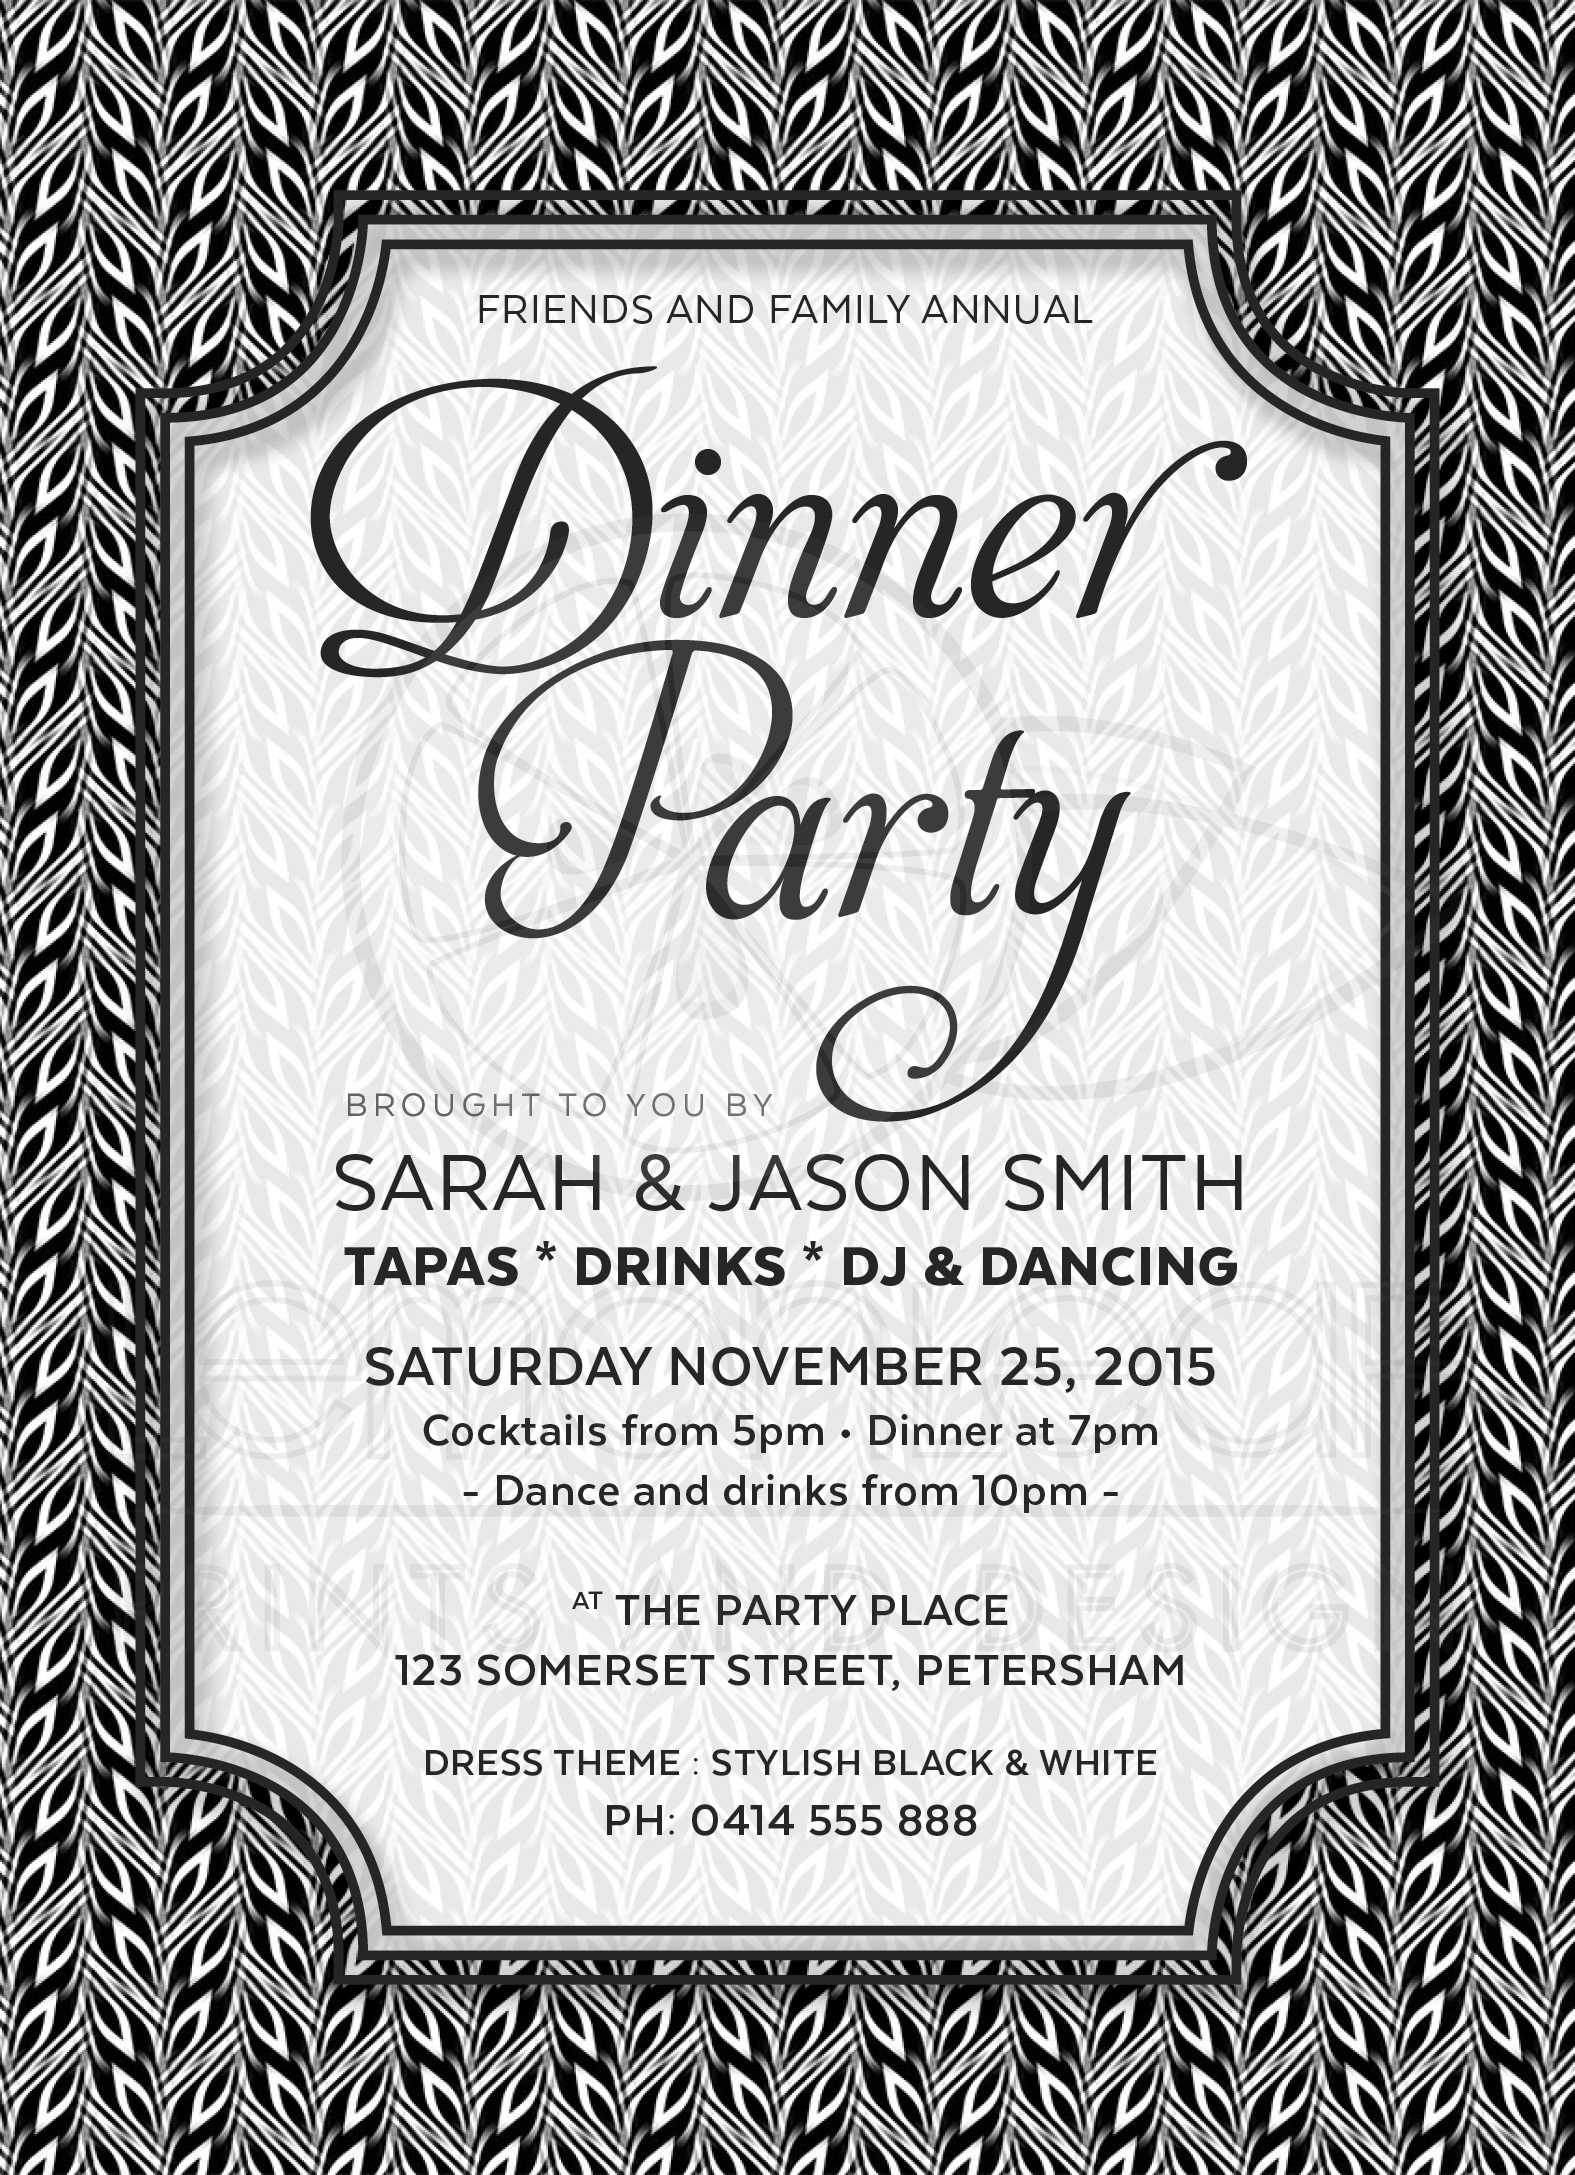 Black and White Dinner Party Invitation   Simply Stylish 02